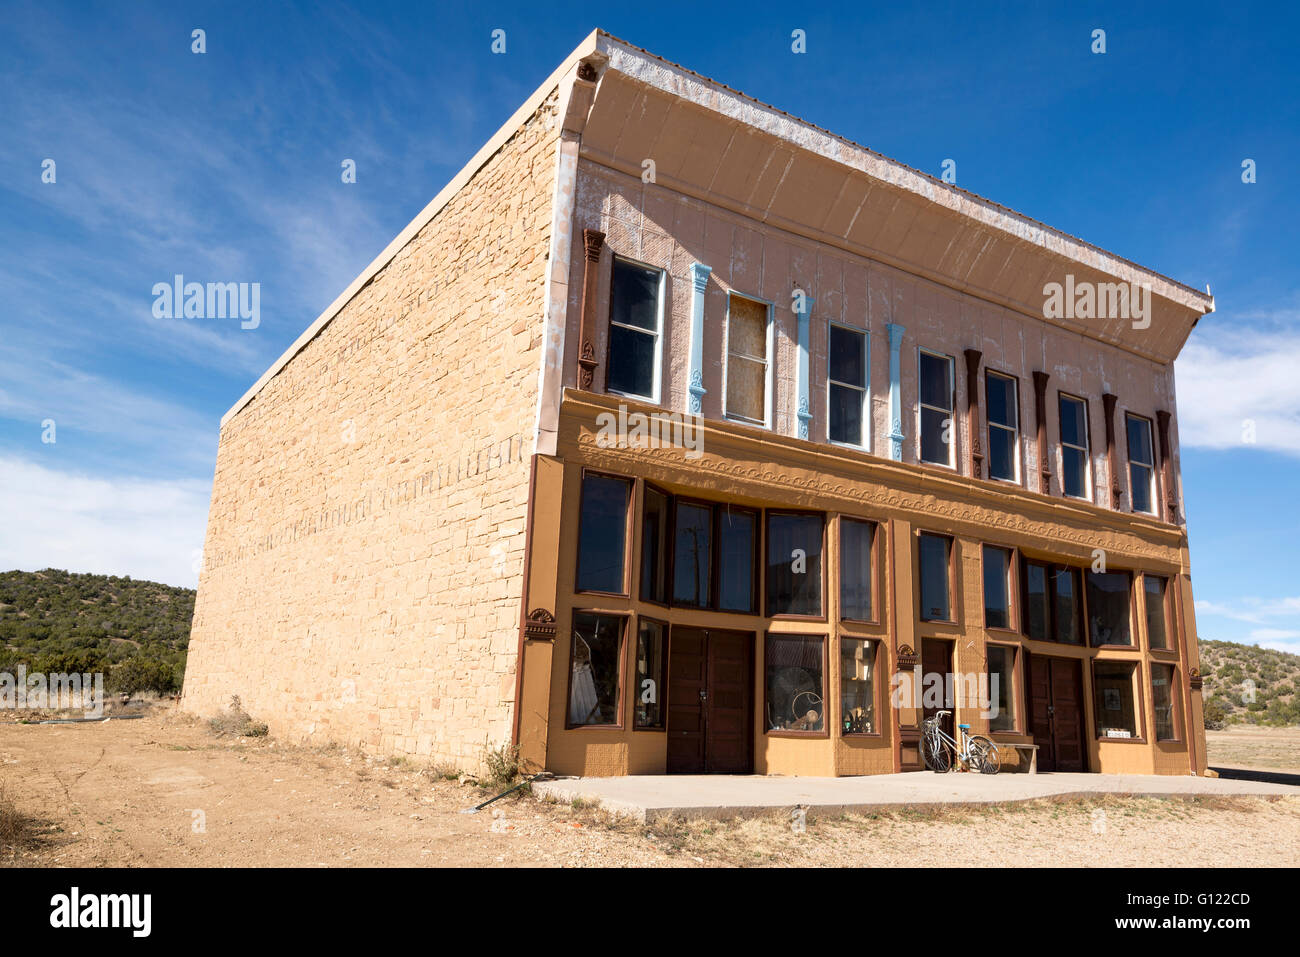 Historic Brown Store in White Oaks ghost town, New Mexico. - Stock Image